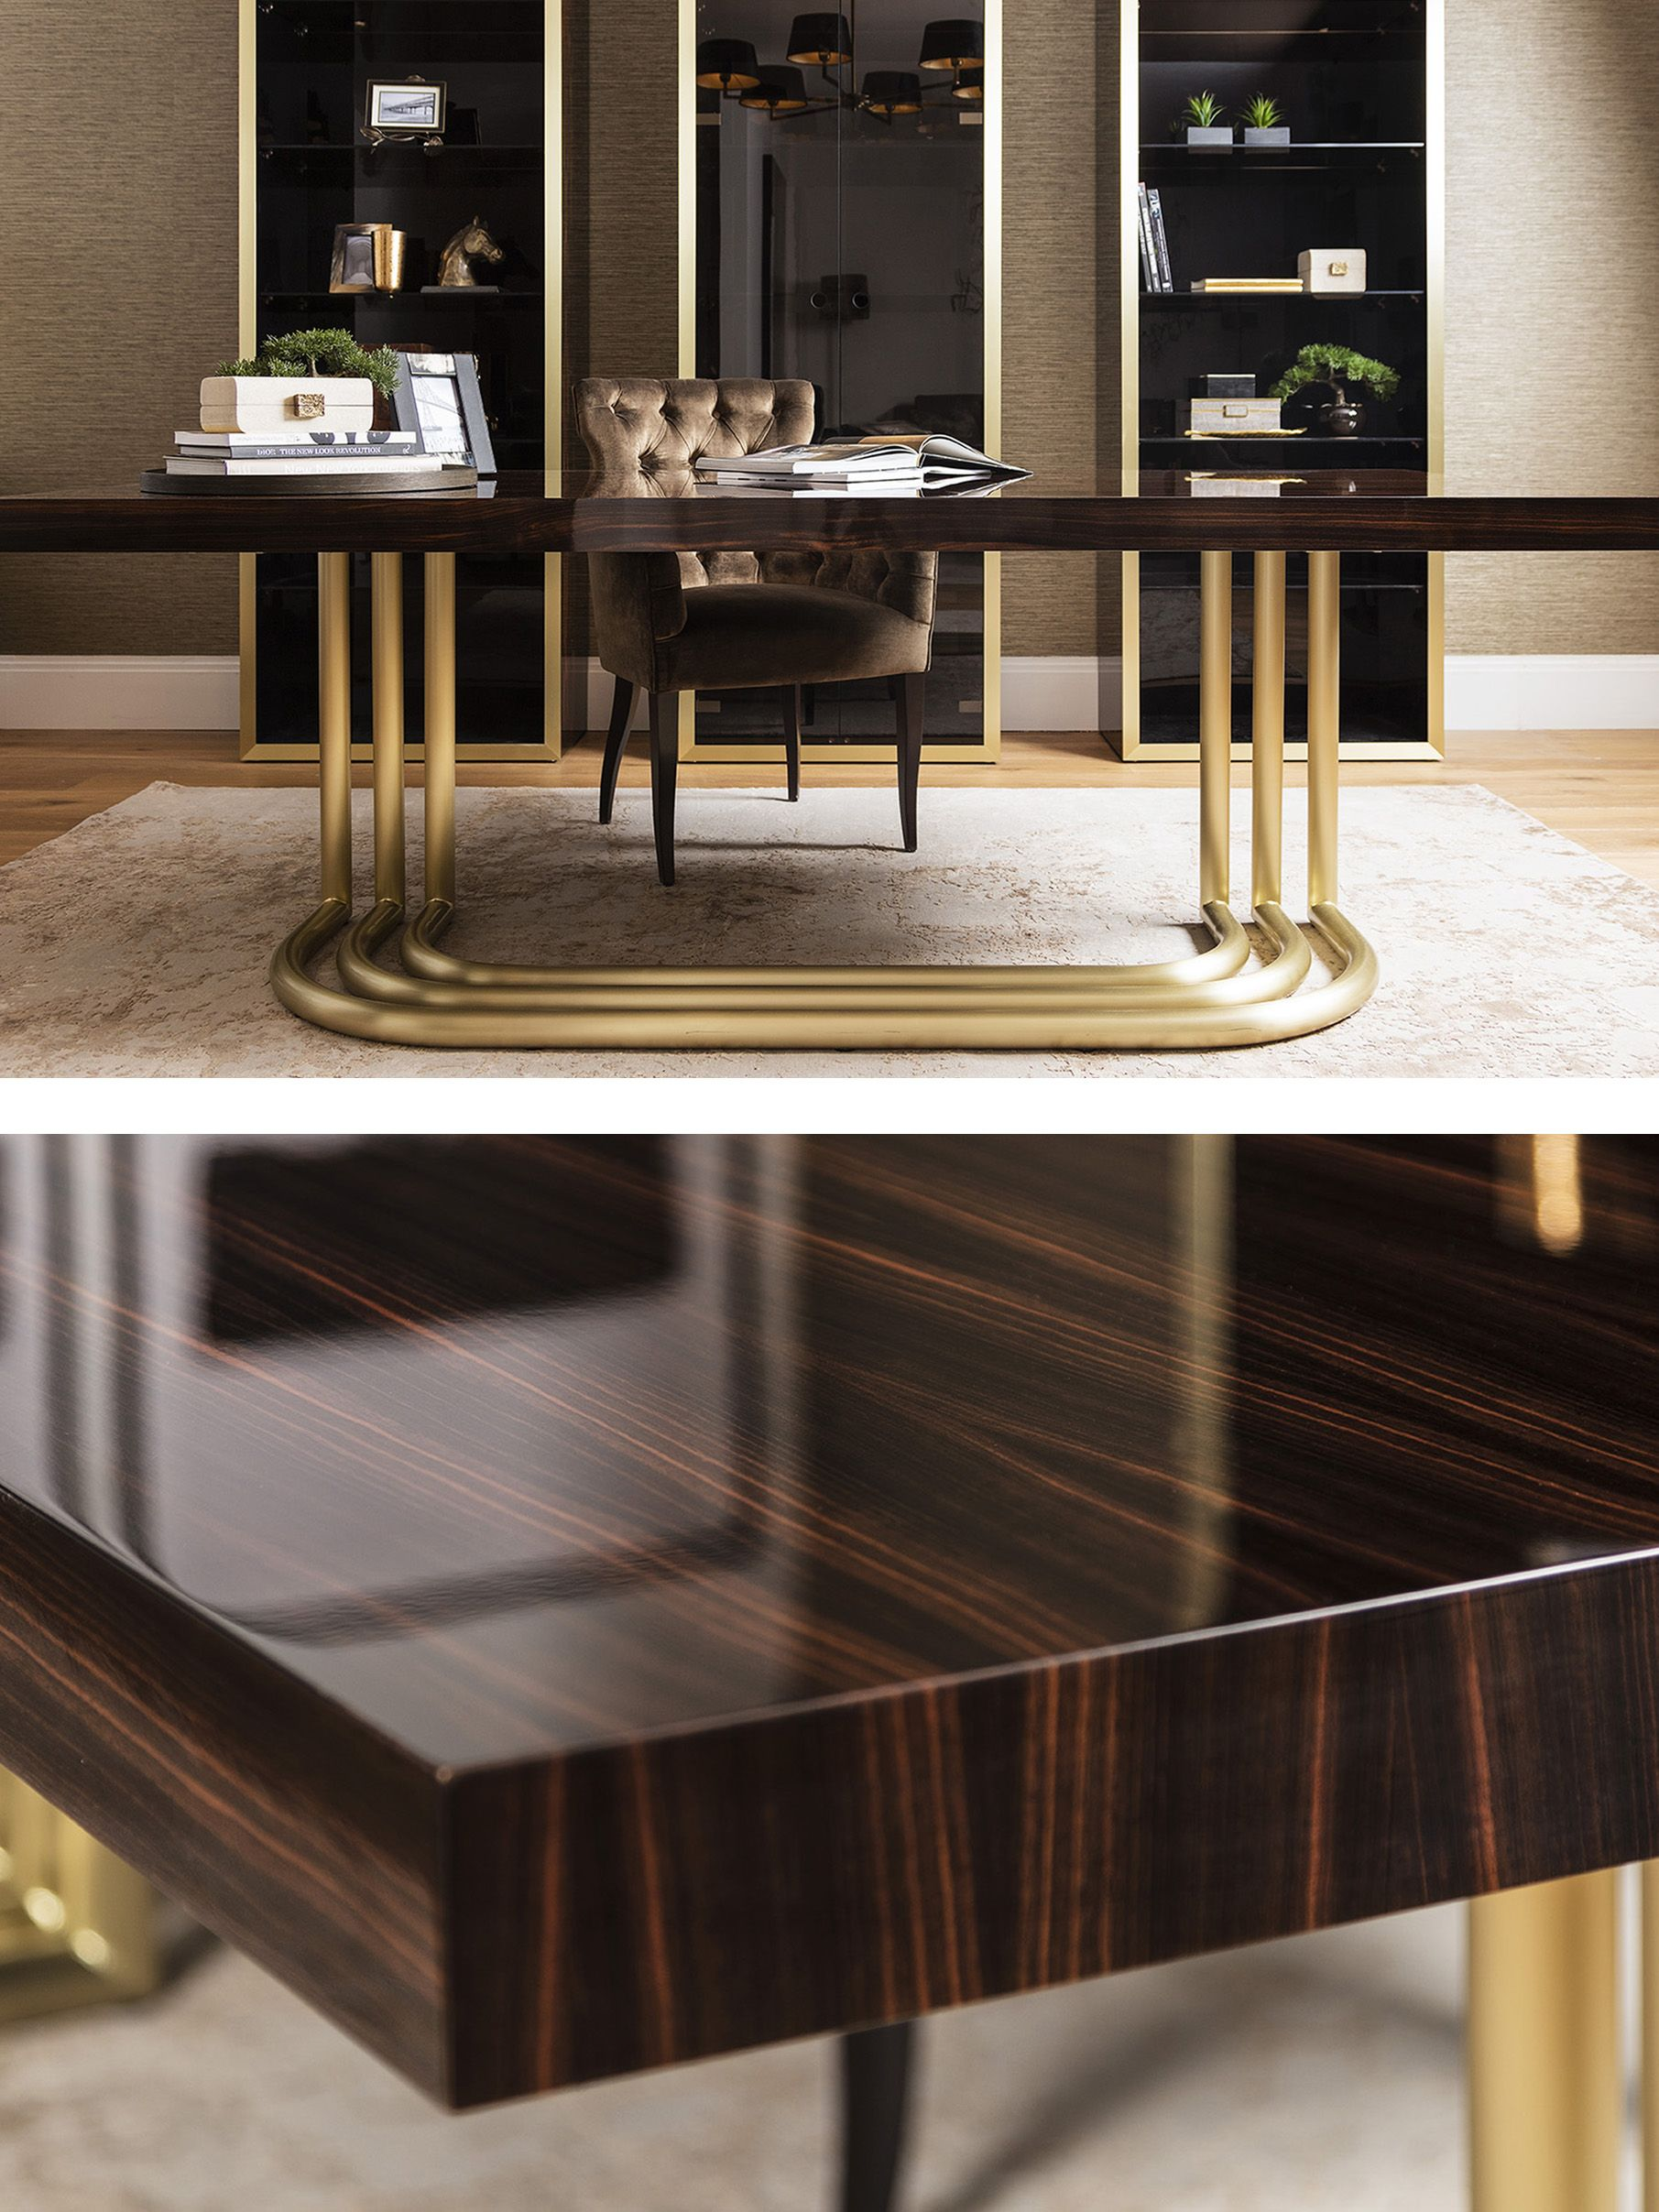 WILLIAM LUXURY HOME OFFICE DESK. A statement desk with a